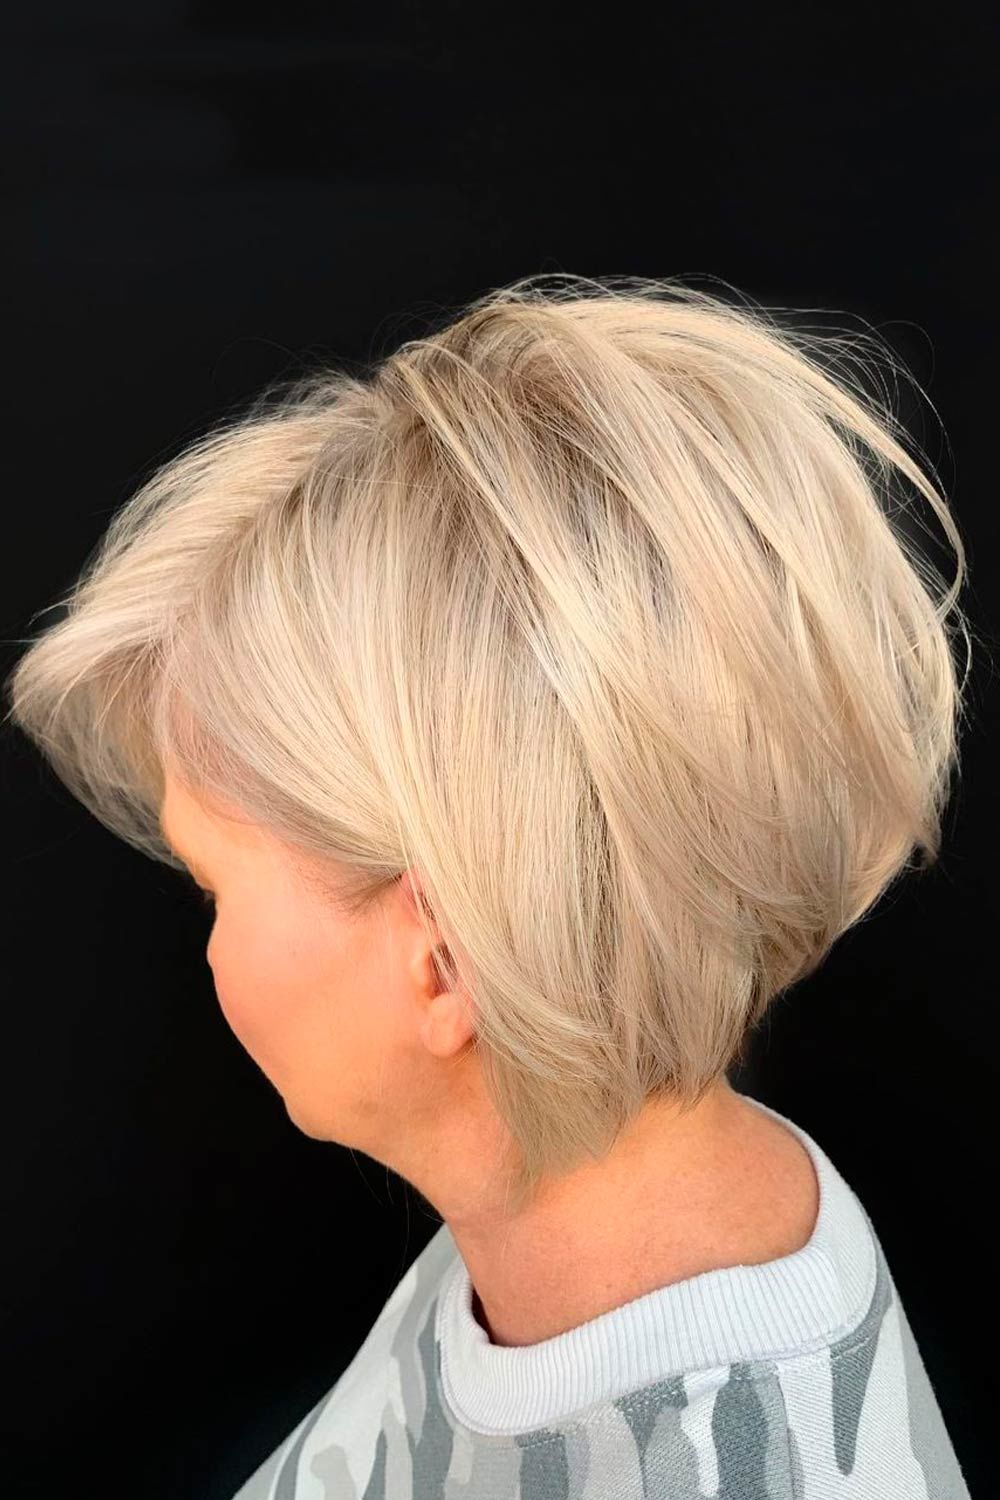 Blunt Long Pixie For Straight Hair , pixie haircuts for fine wine and women over 50, pixie layered haircuts for women over 50,